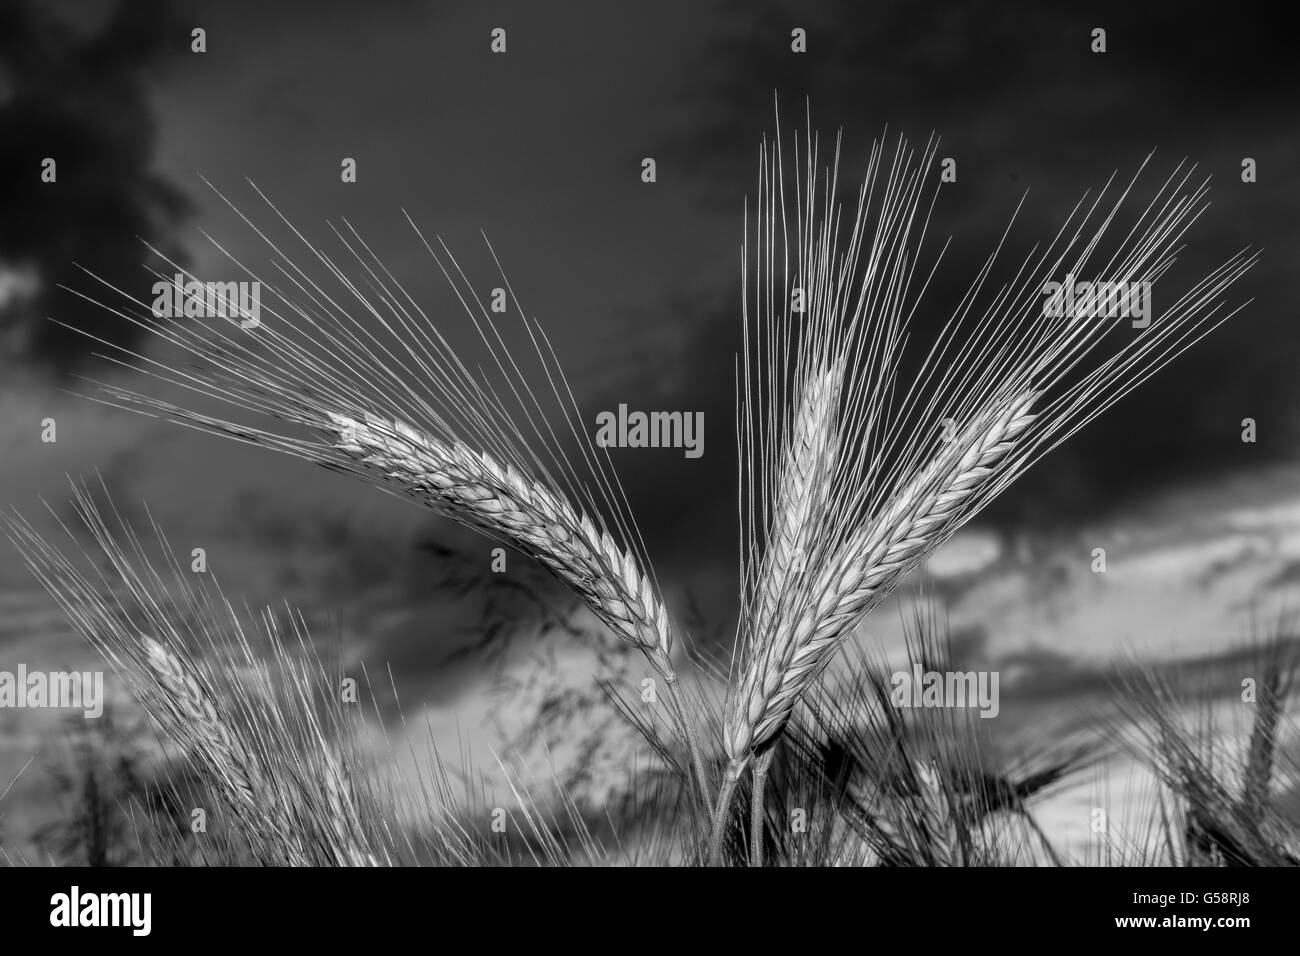 Barley in the field, closeup, selective focus on front stems, dark background sky, black and white - Stock Image